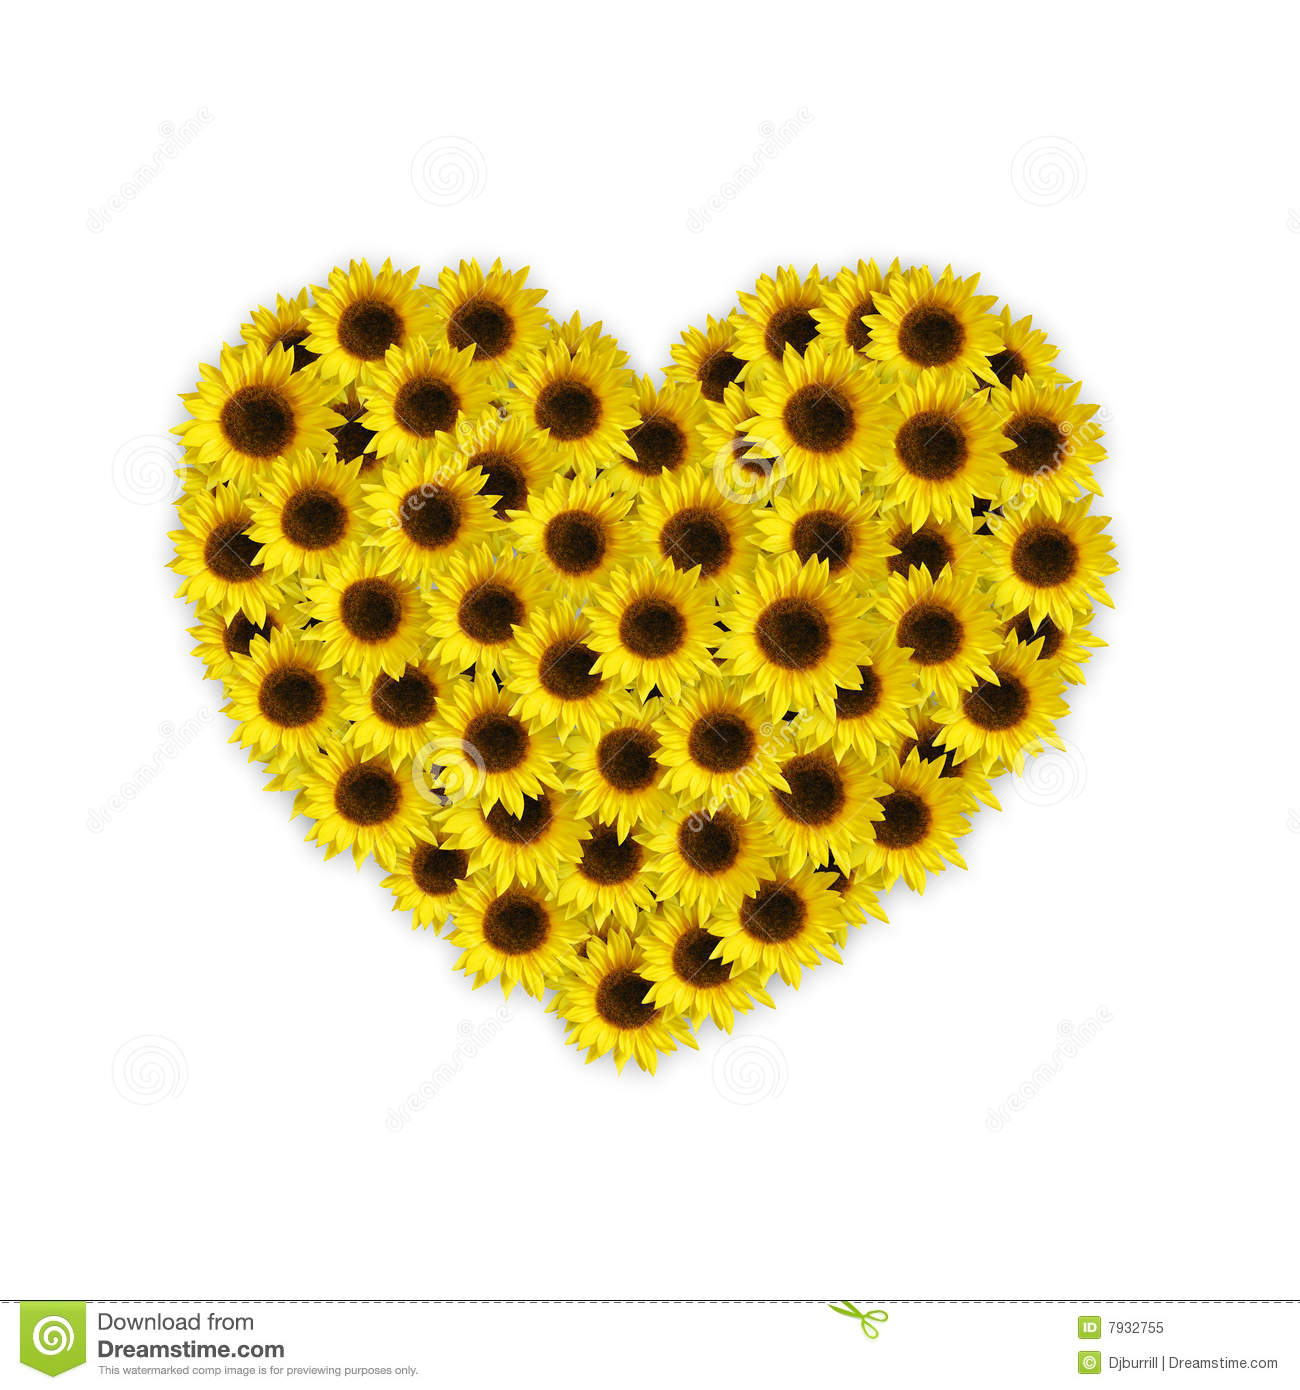 Yellow sunflowers in a heart shape isolated on white background.